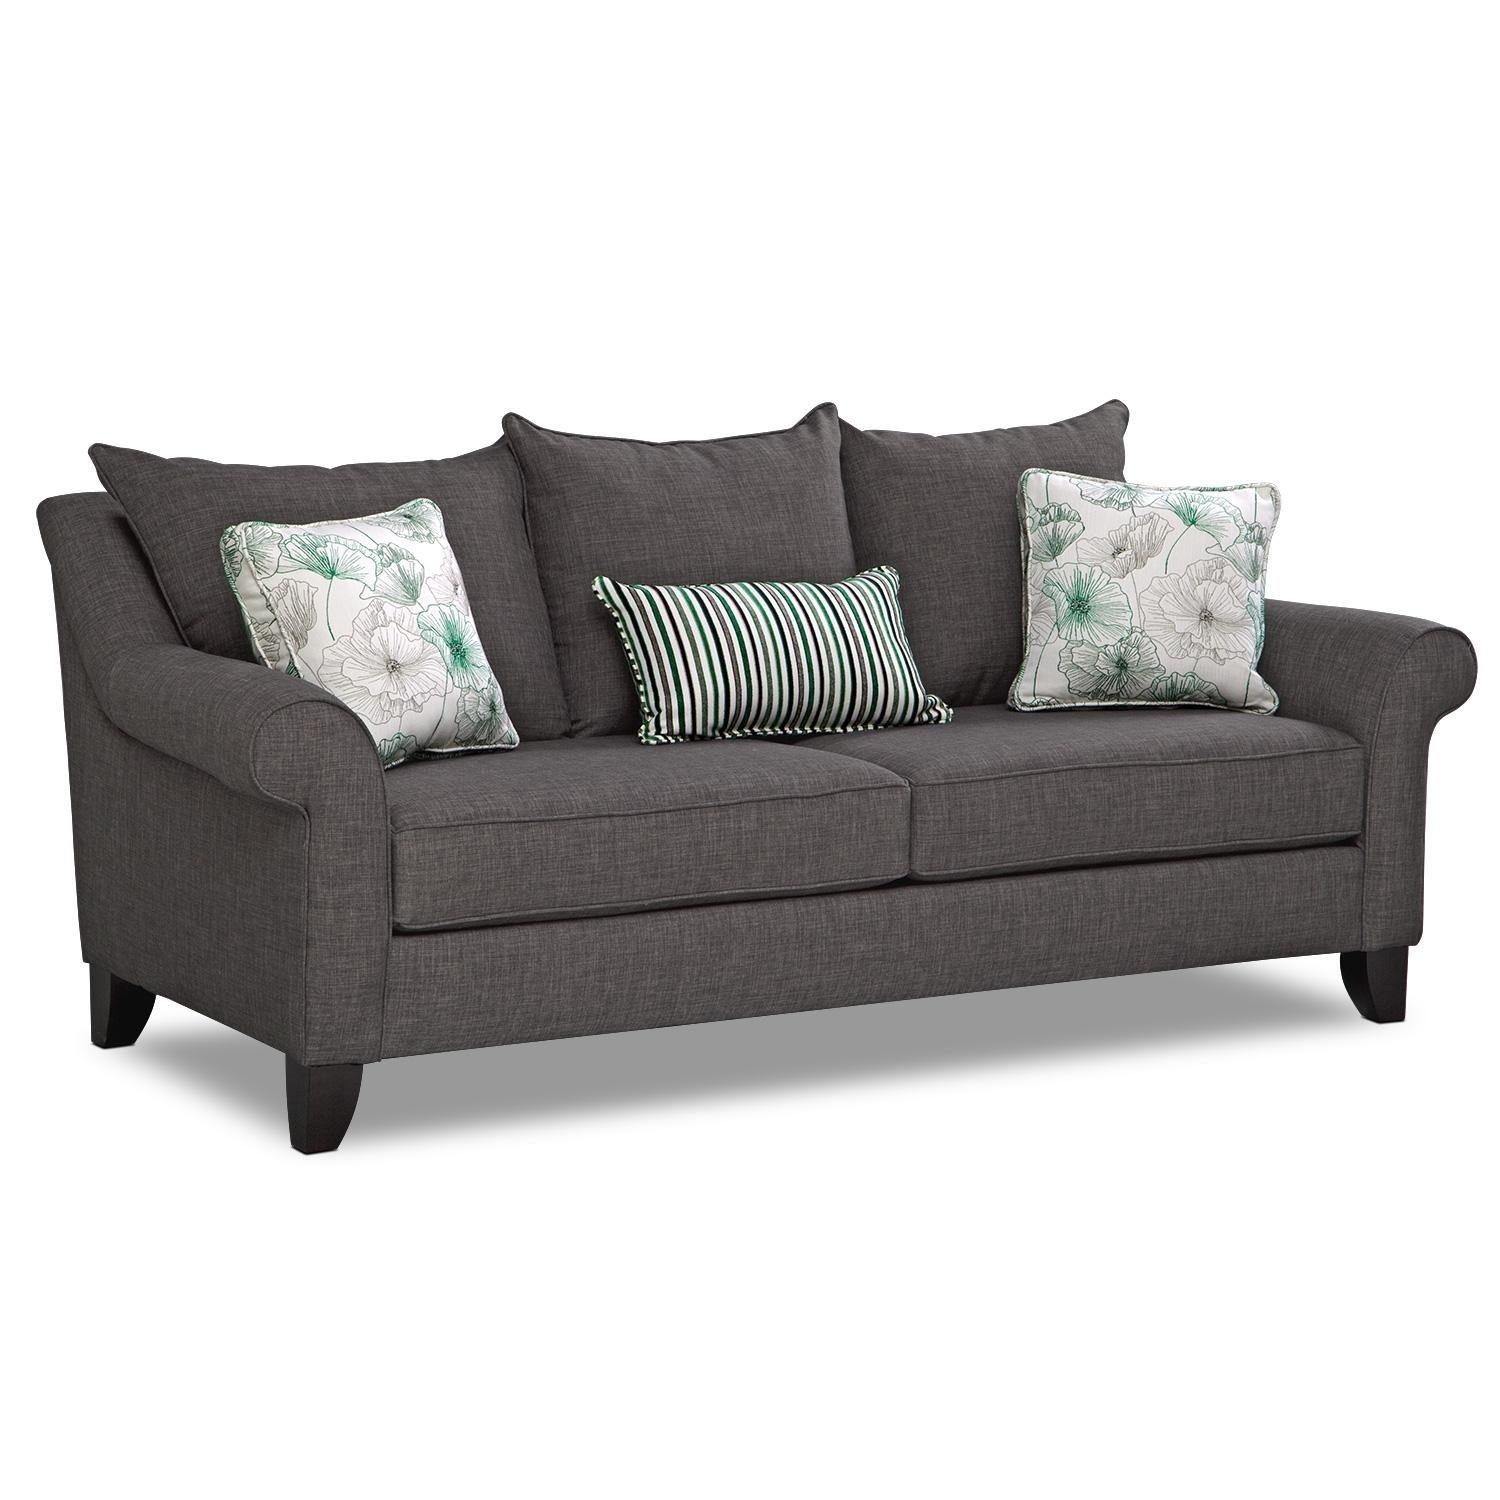 Living Rooms: Cheap Sectional | Value City Furniture Living Room In Value City Sofas (Image 7 of 20)